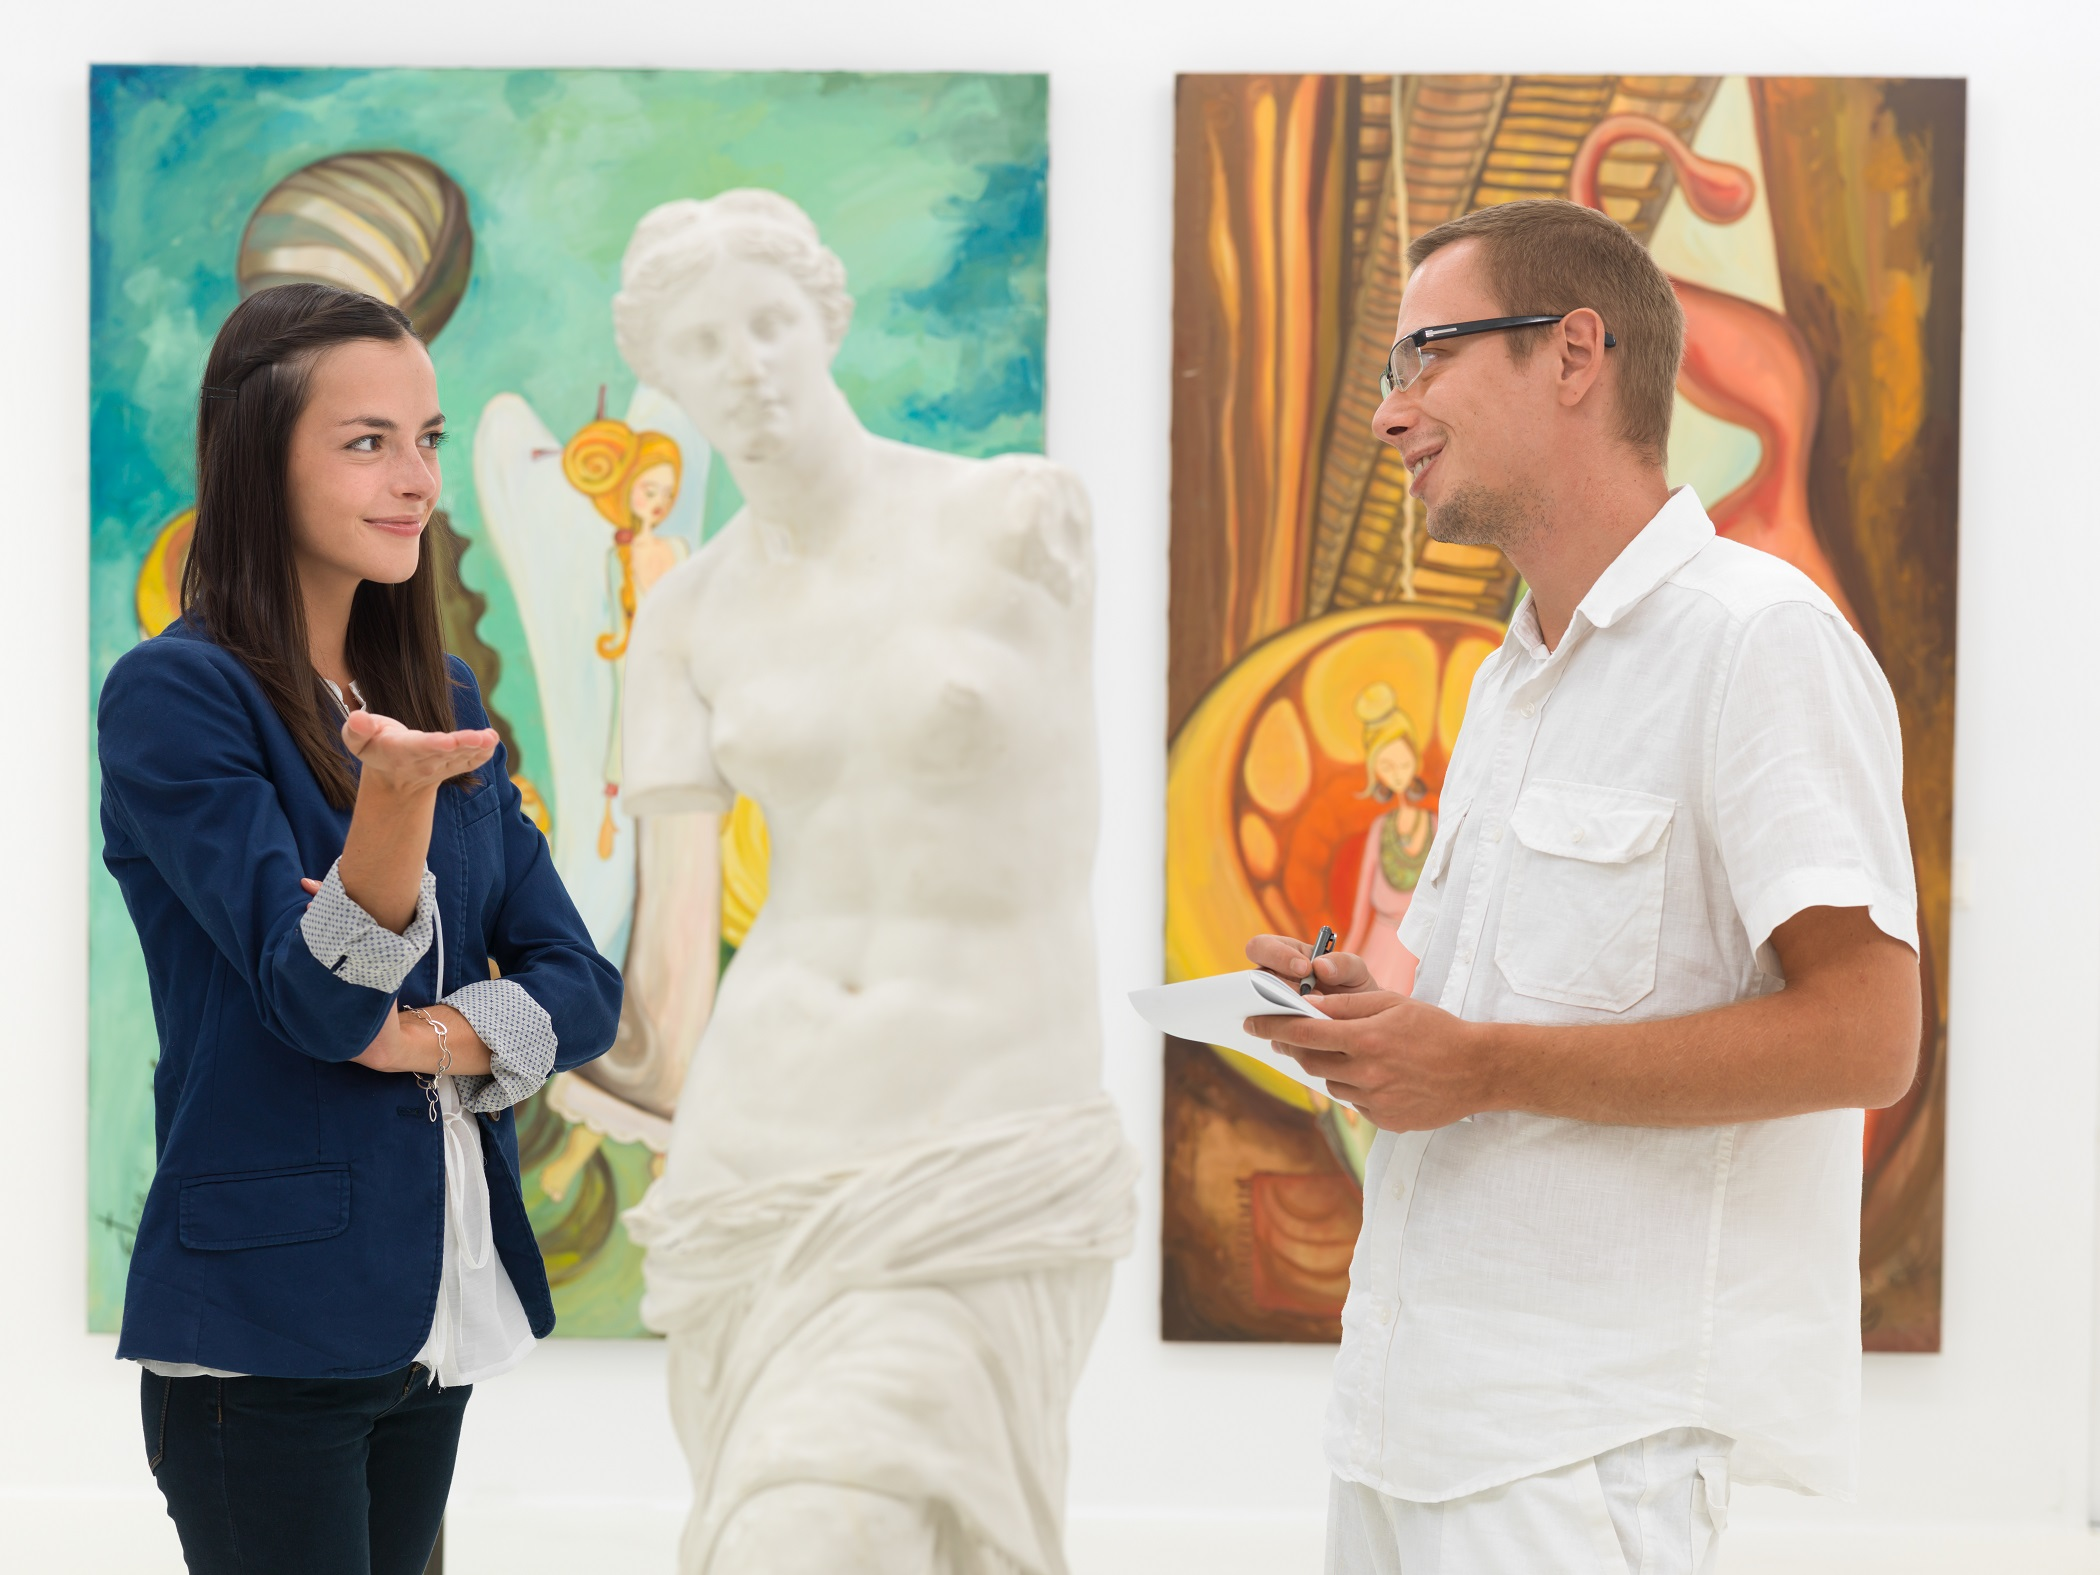 couples in the museum appreciating art